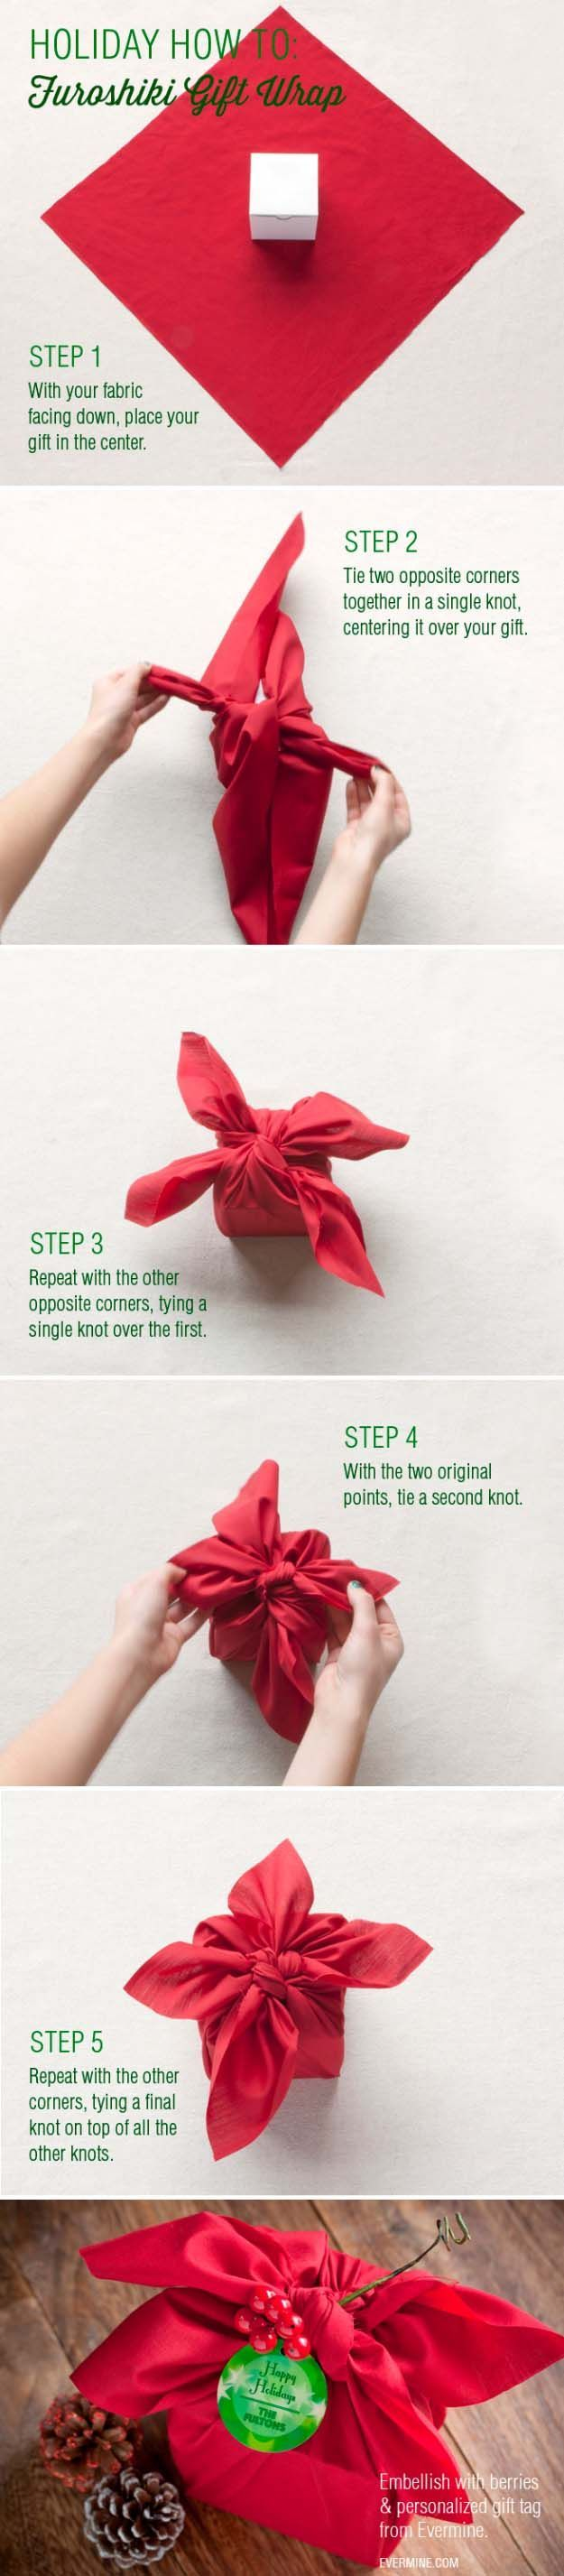 52 Insanely Clever Gift Wrapping Ideas You Ll Love Gift